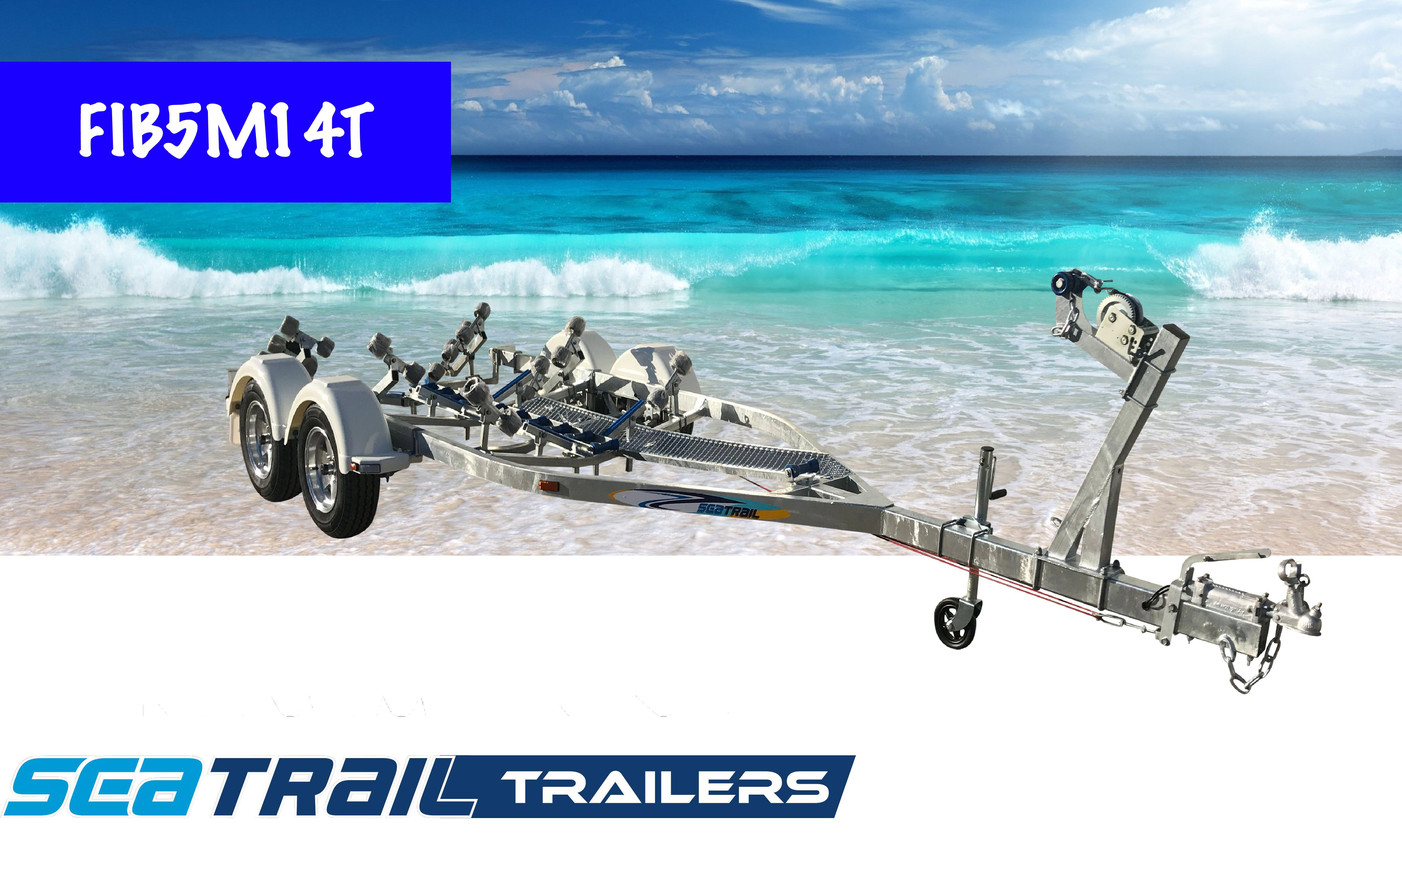 SEATRAIL FIB5M14T DELUXE TANDEM ROLLERED BOAT TRAILER